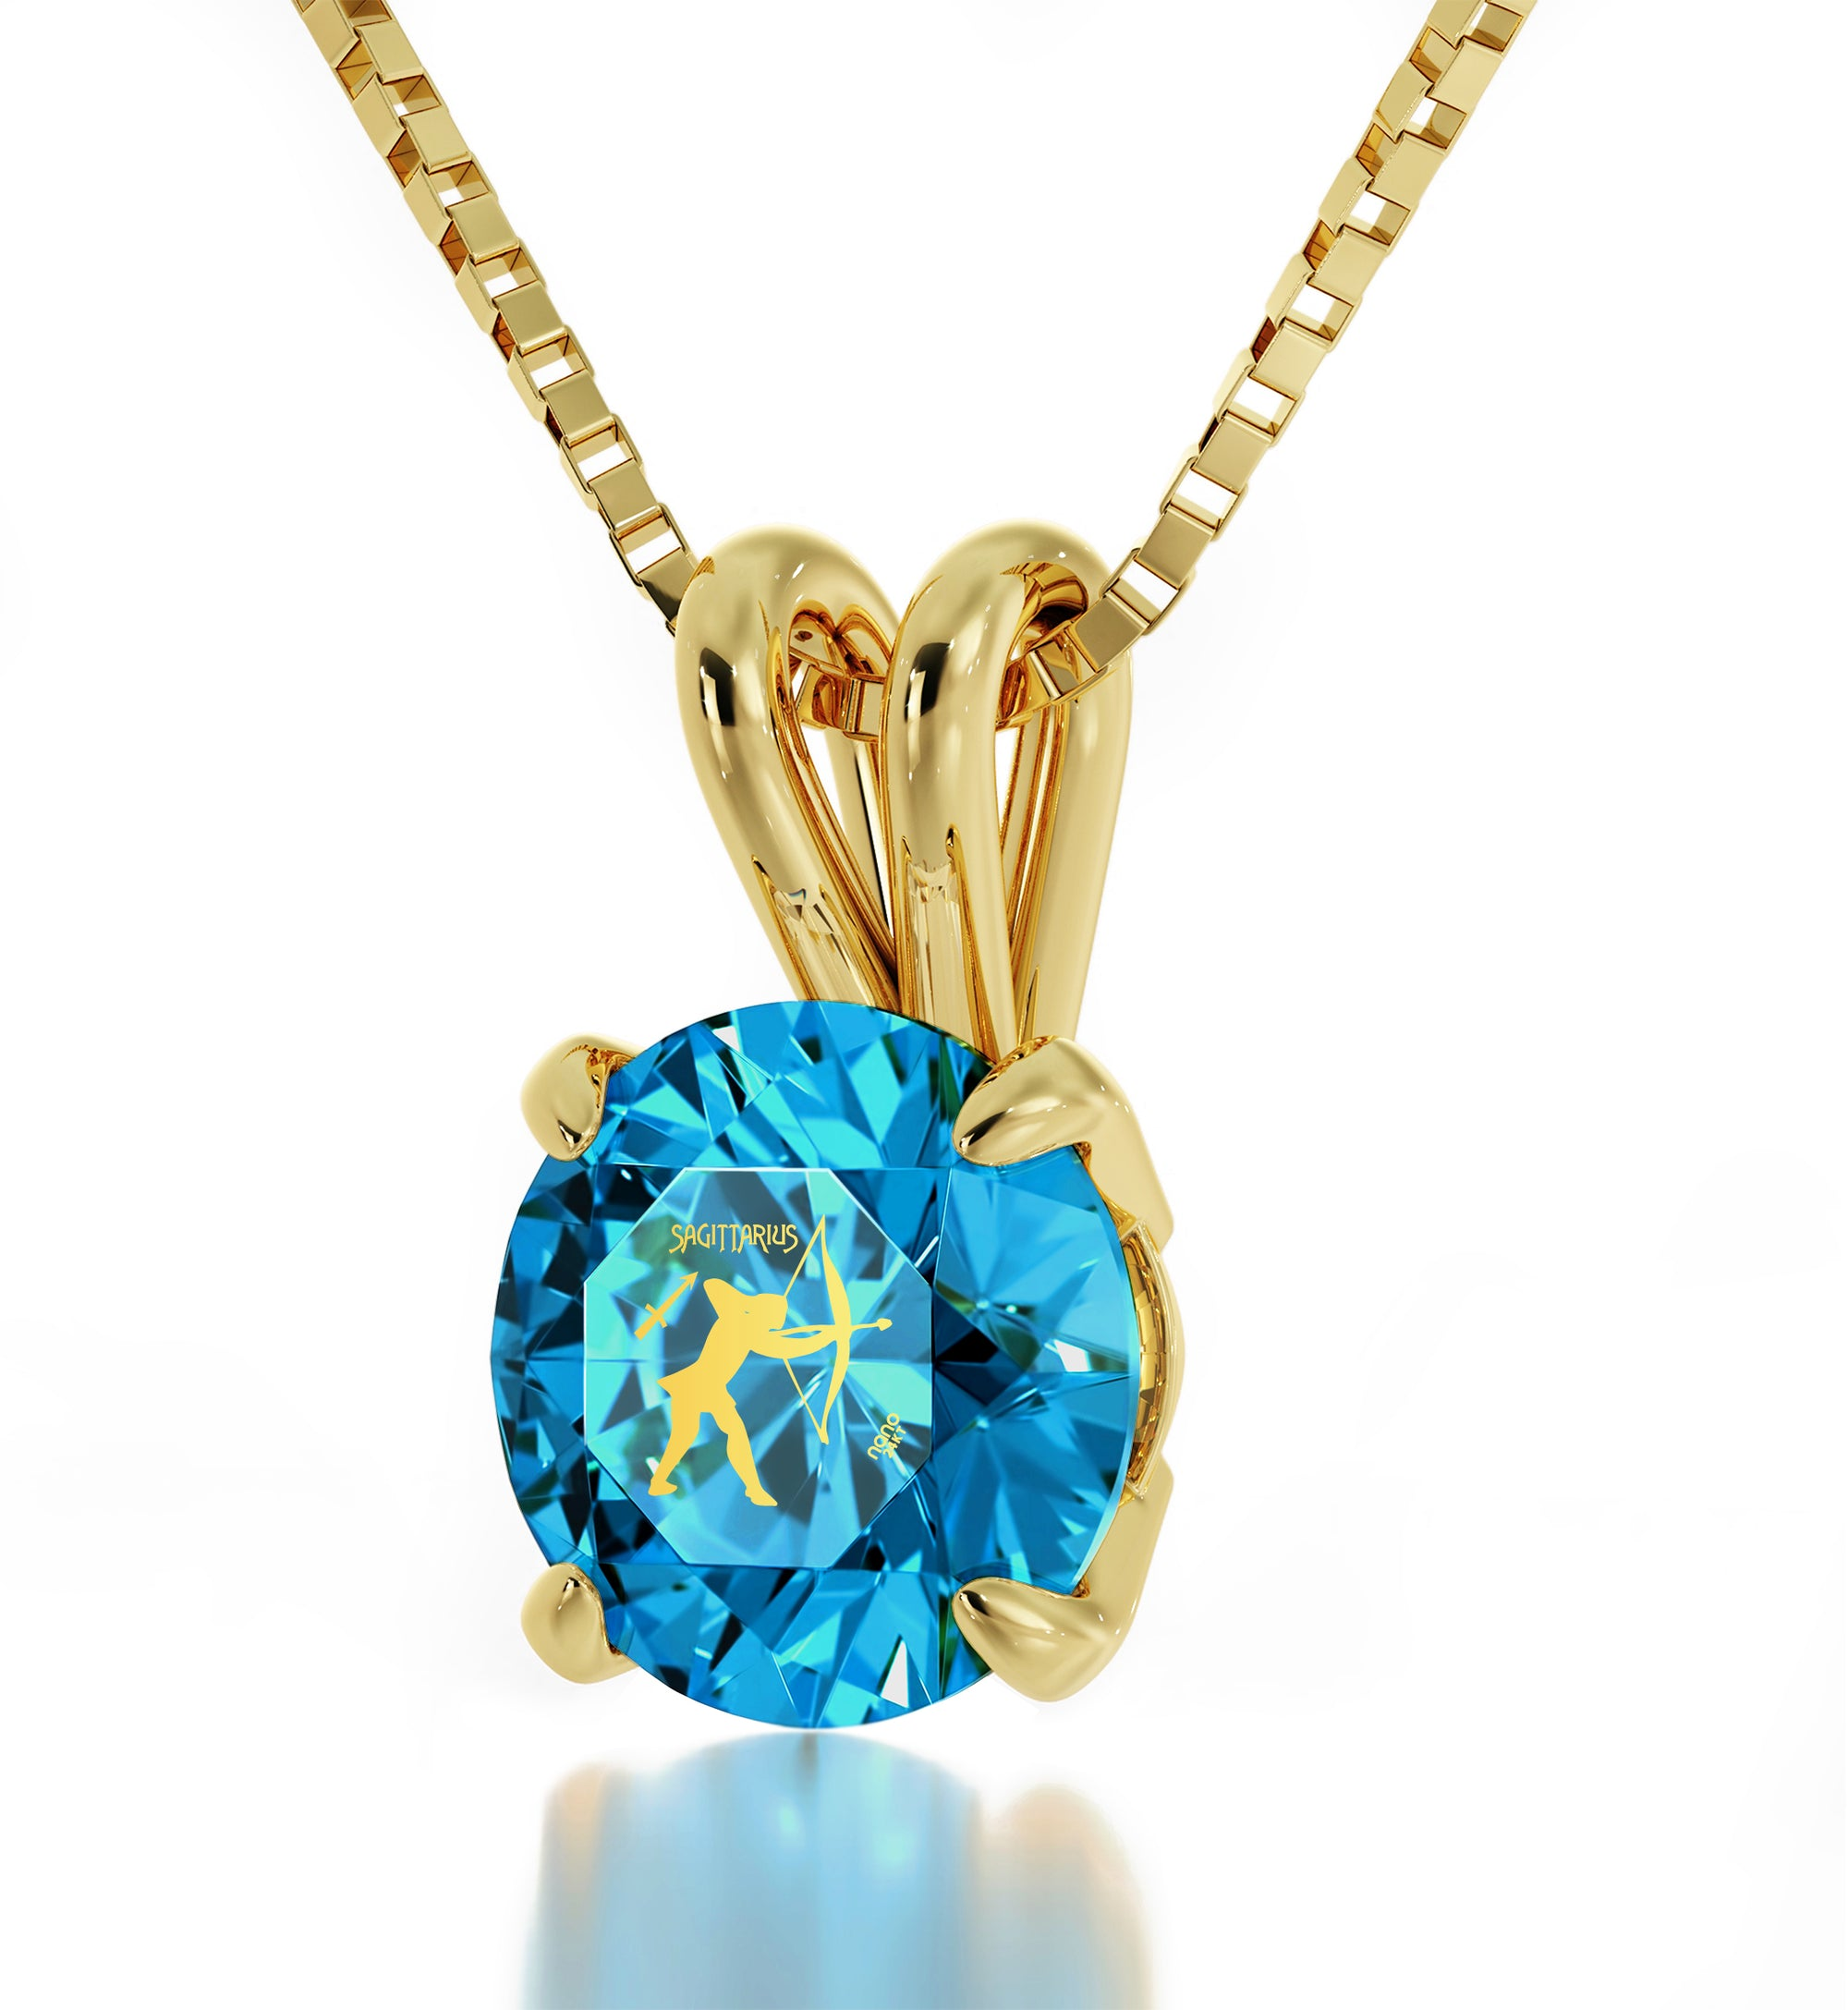 gold necklace marge products mimi high with jewellery small res heart puff vermeil